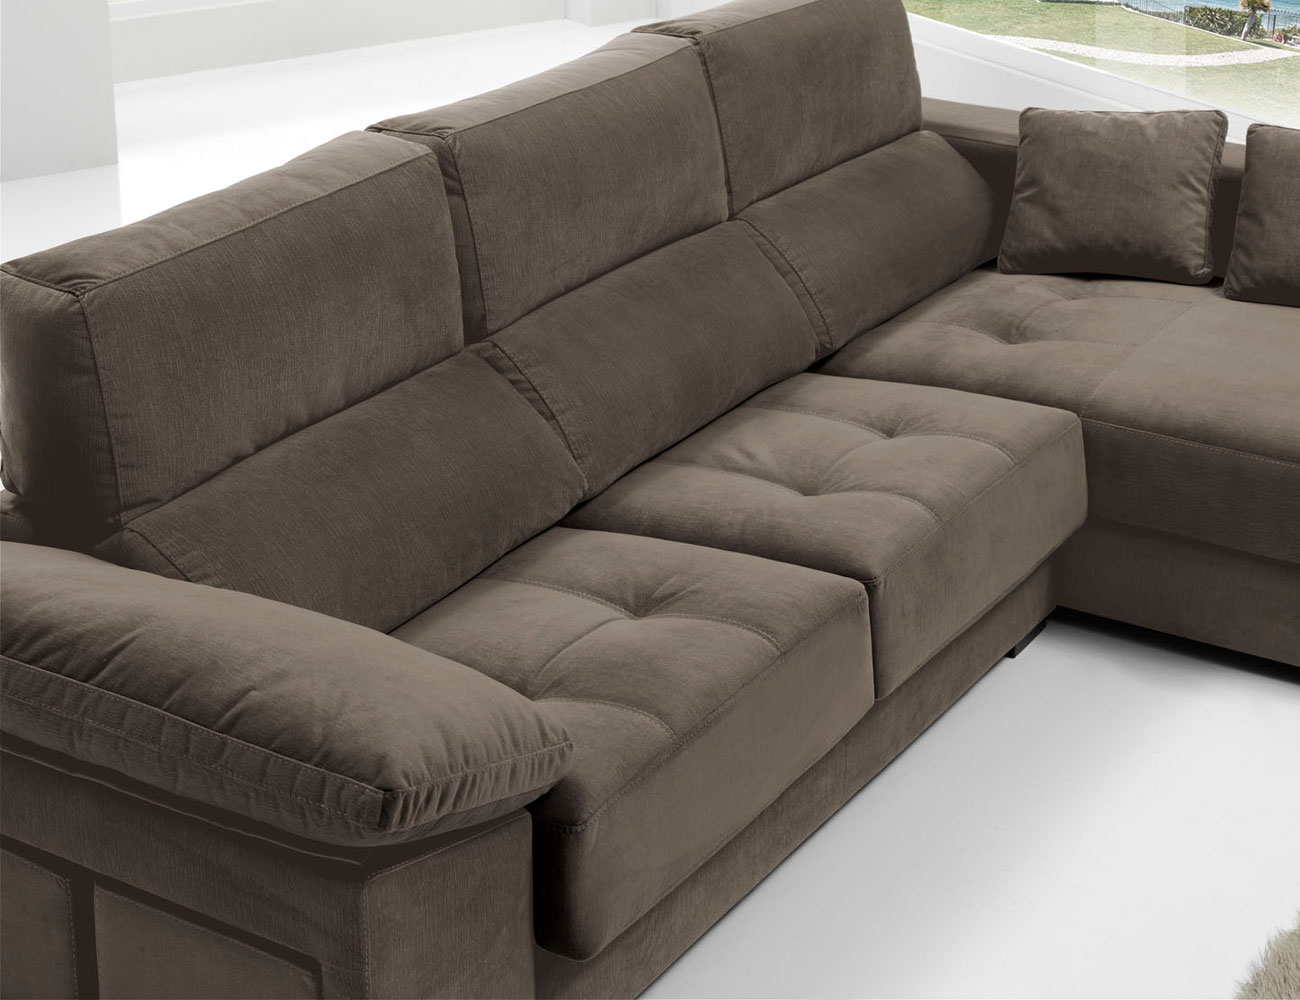 Sofa chaiselongue anti manchas bering pouf 236